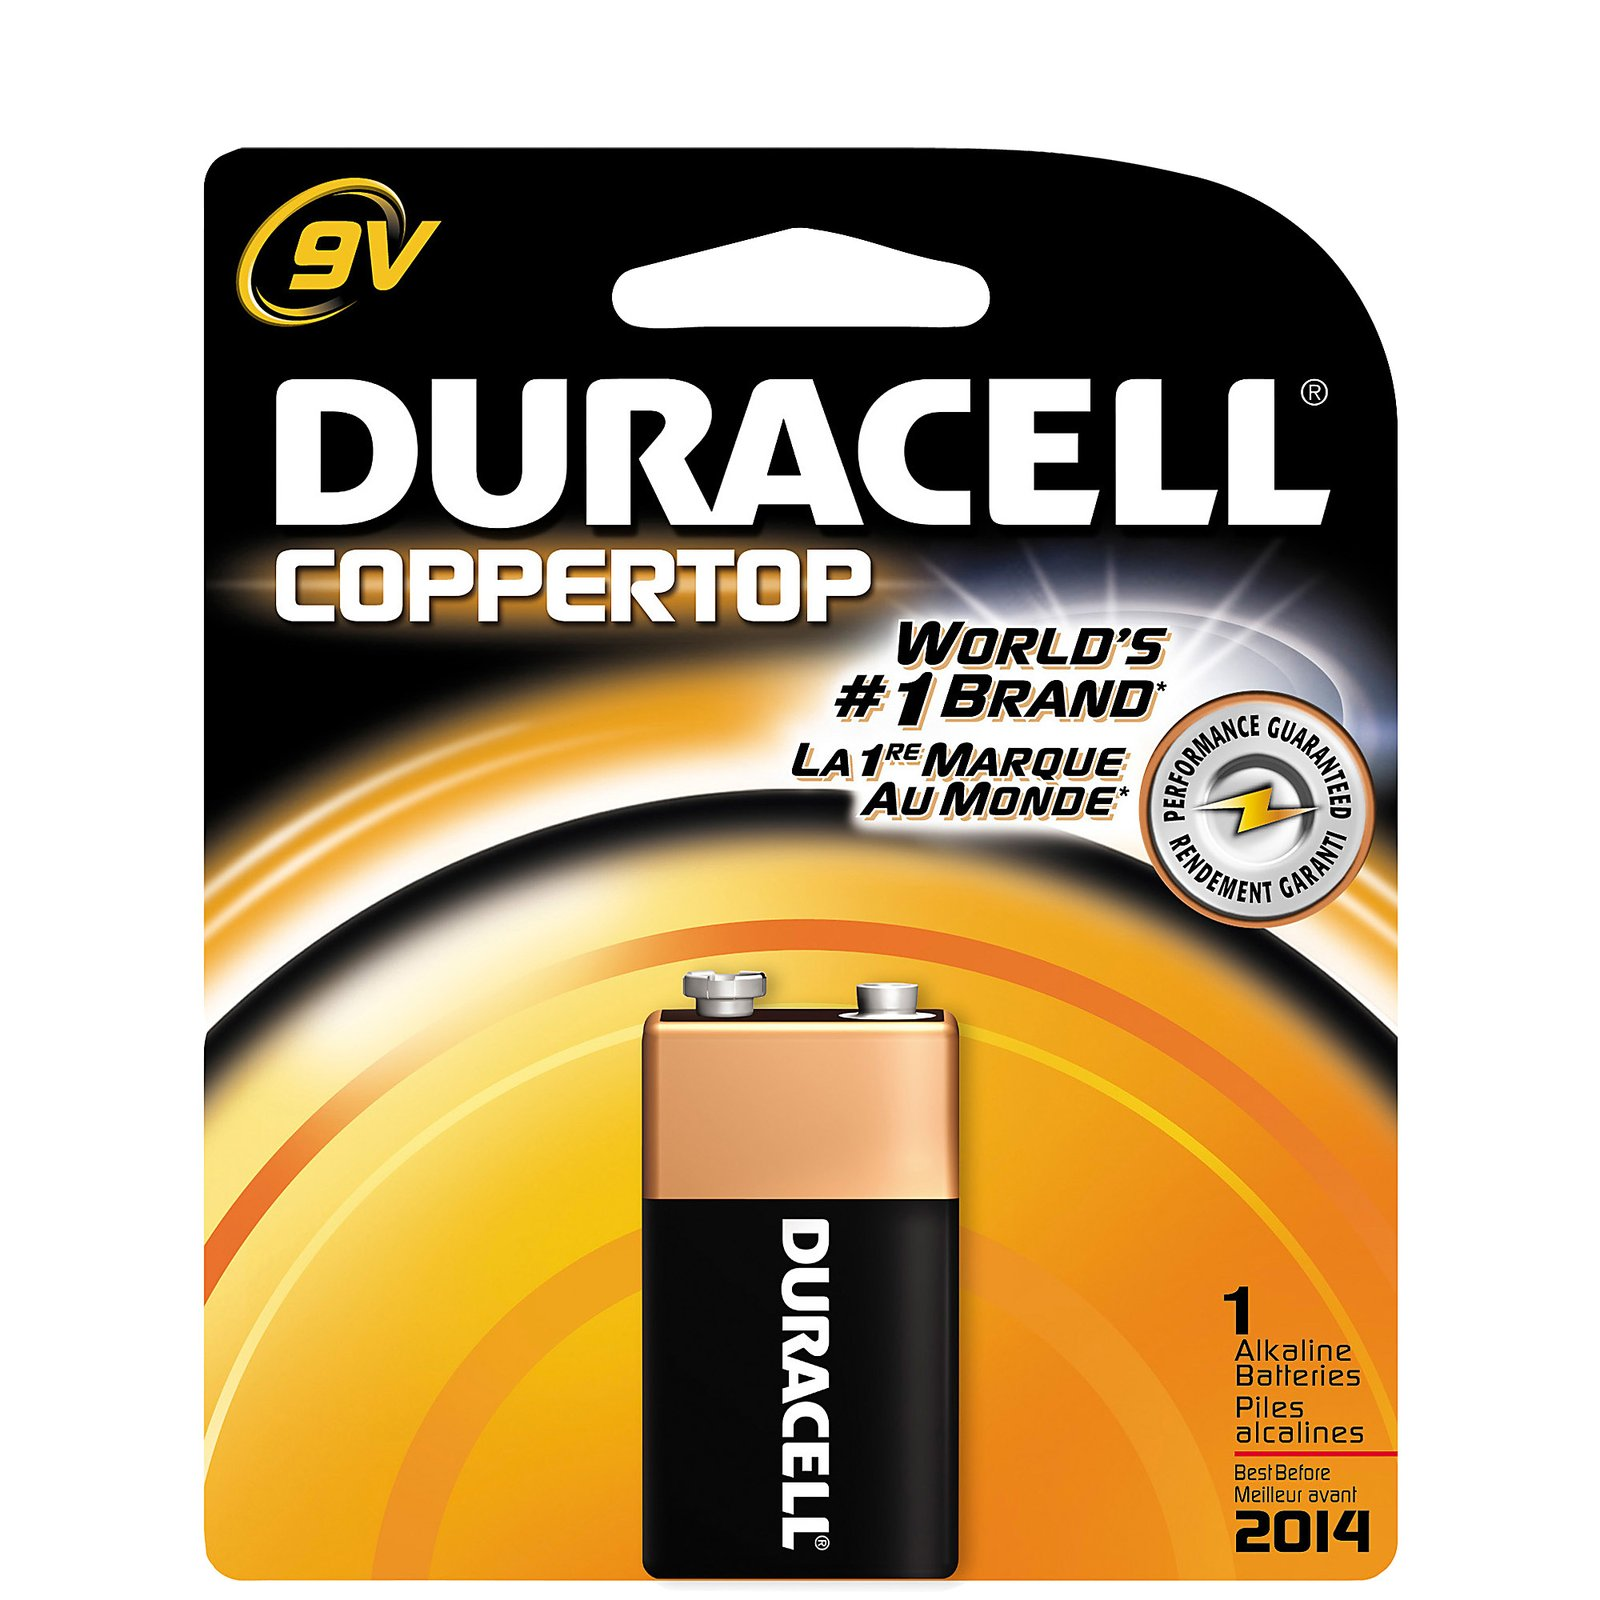 Duracell 9volt - 12 count box